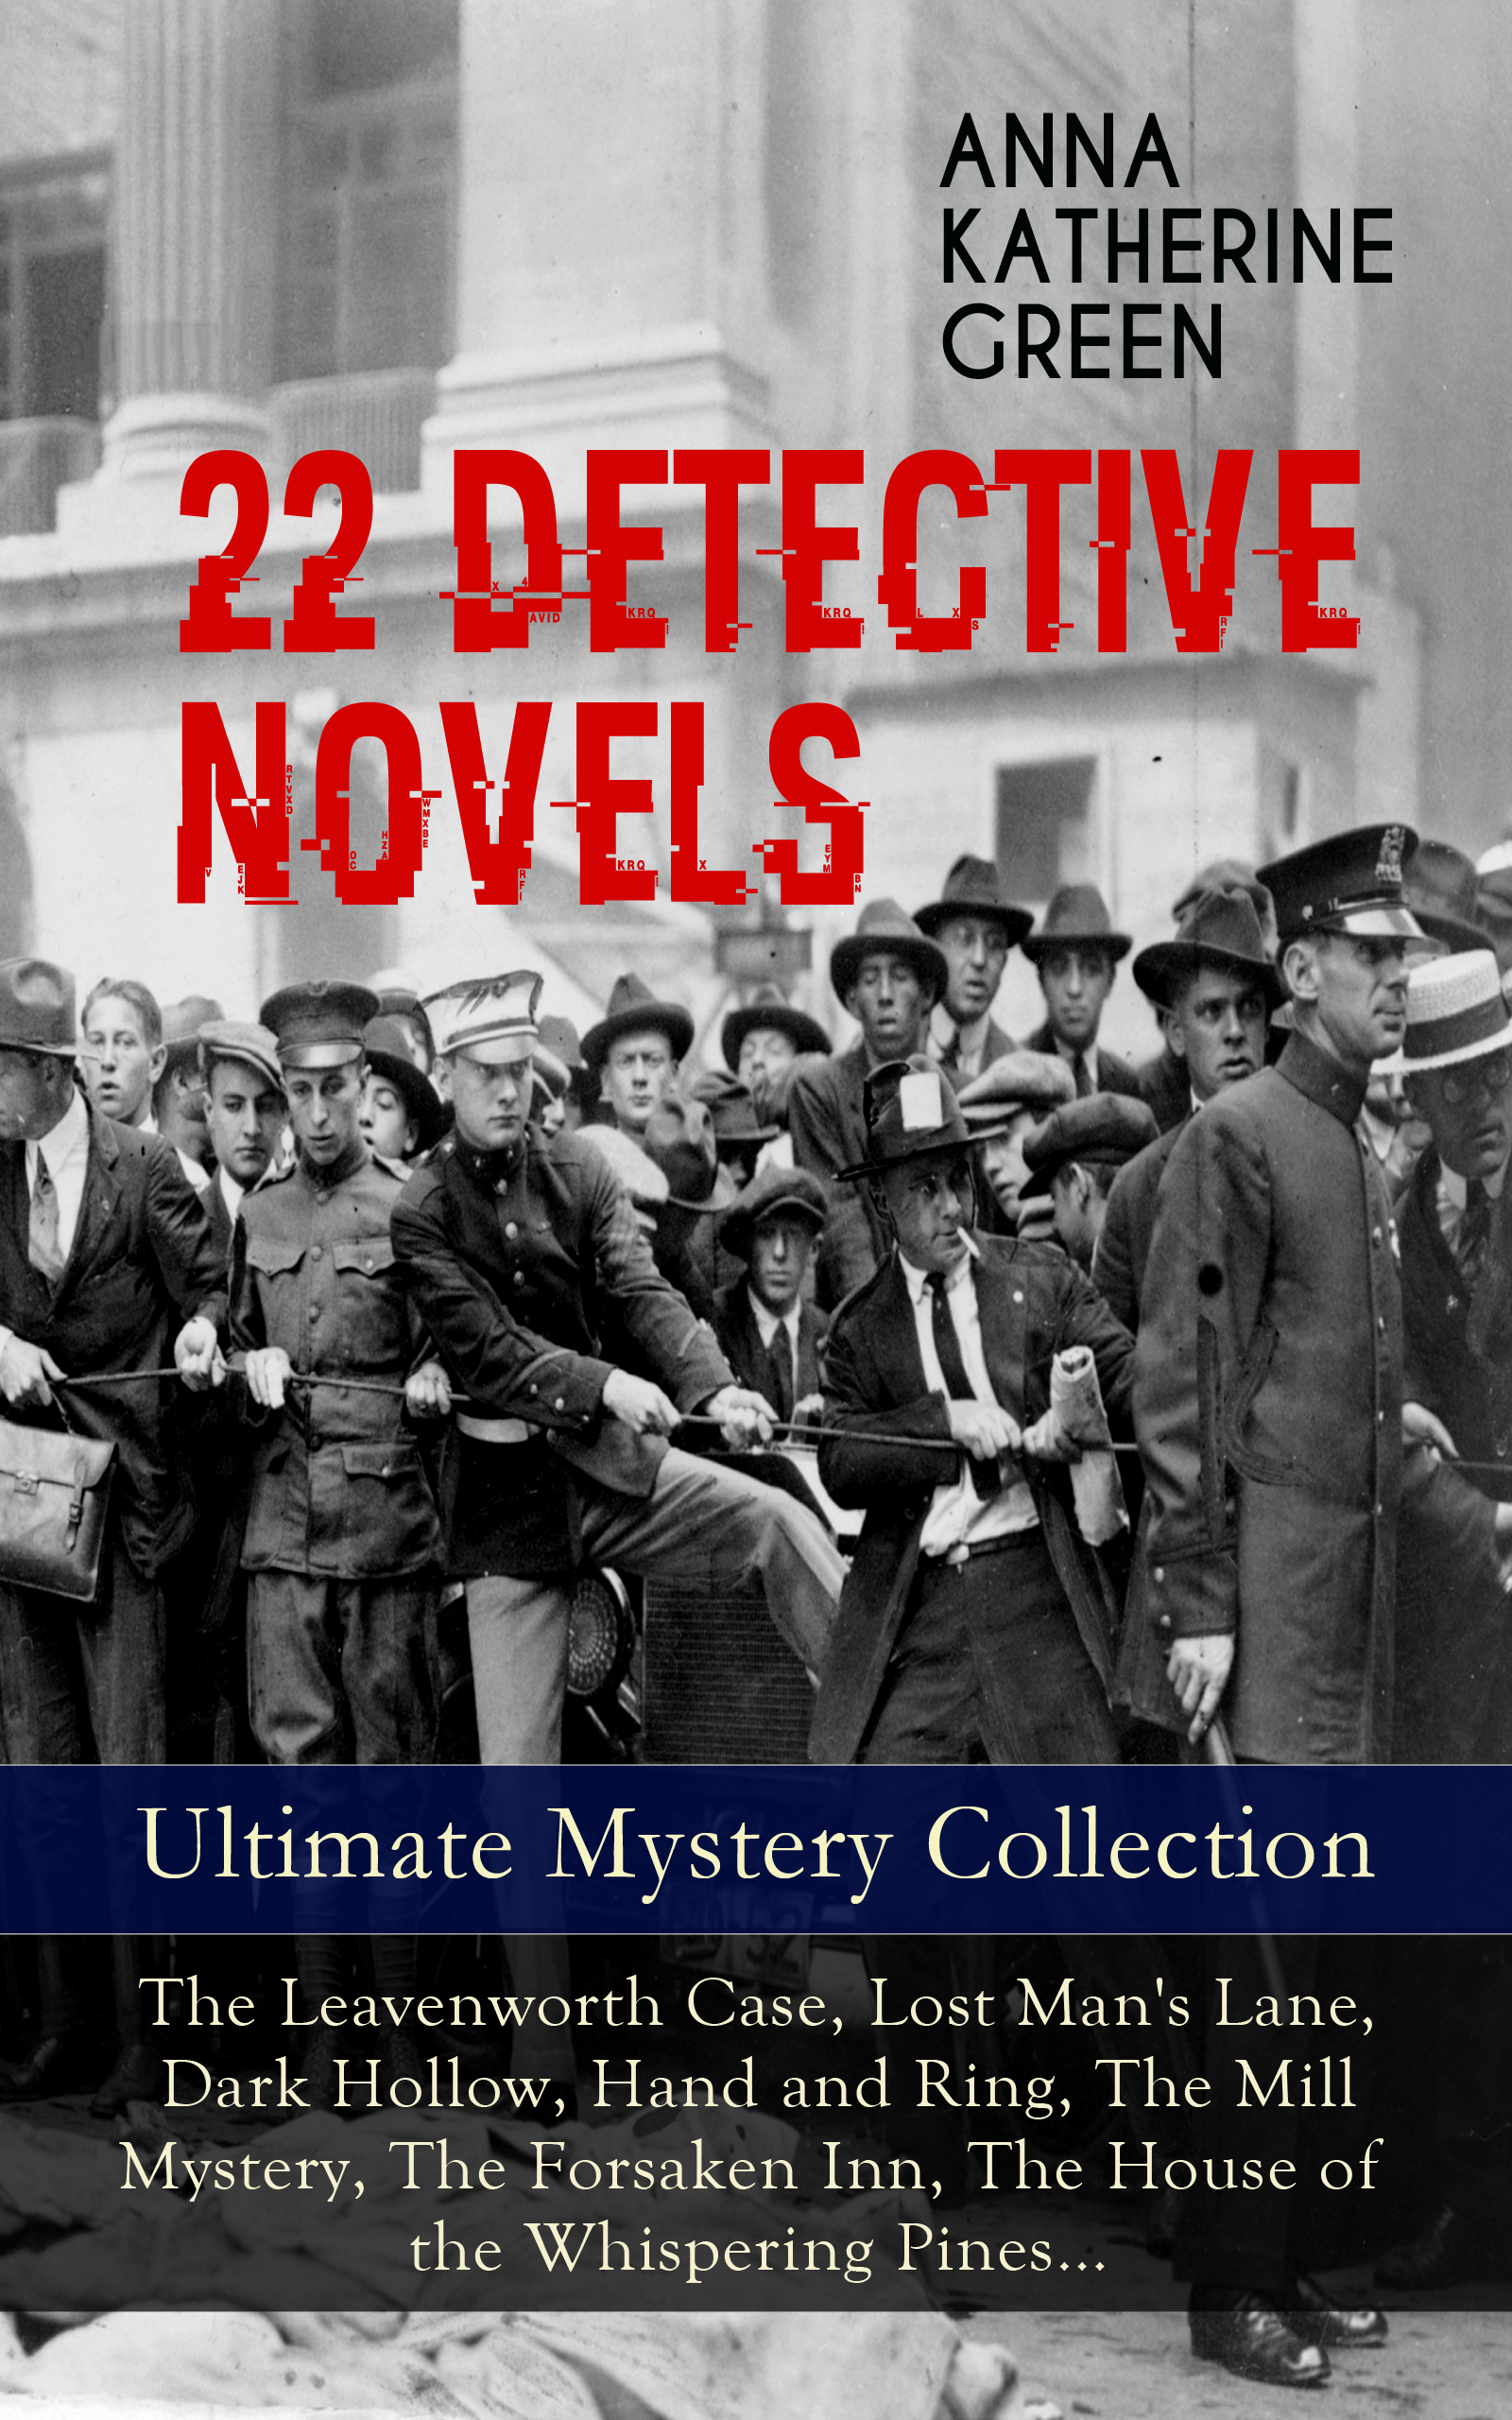 Анна Грин 22 DETECTIVE NOVELS - Ultimate Mystery Collection: The Leavenworth Case, Lost Man's Lane, Dark Hollow, Hand and Ring, The Mill Mystery, The Forsaken Inn, The House of the Whispering Pines… the yardbirds the yardbirds the ultimate collection 2 cd